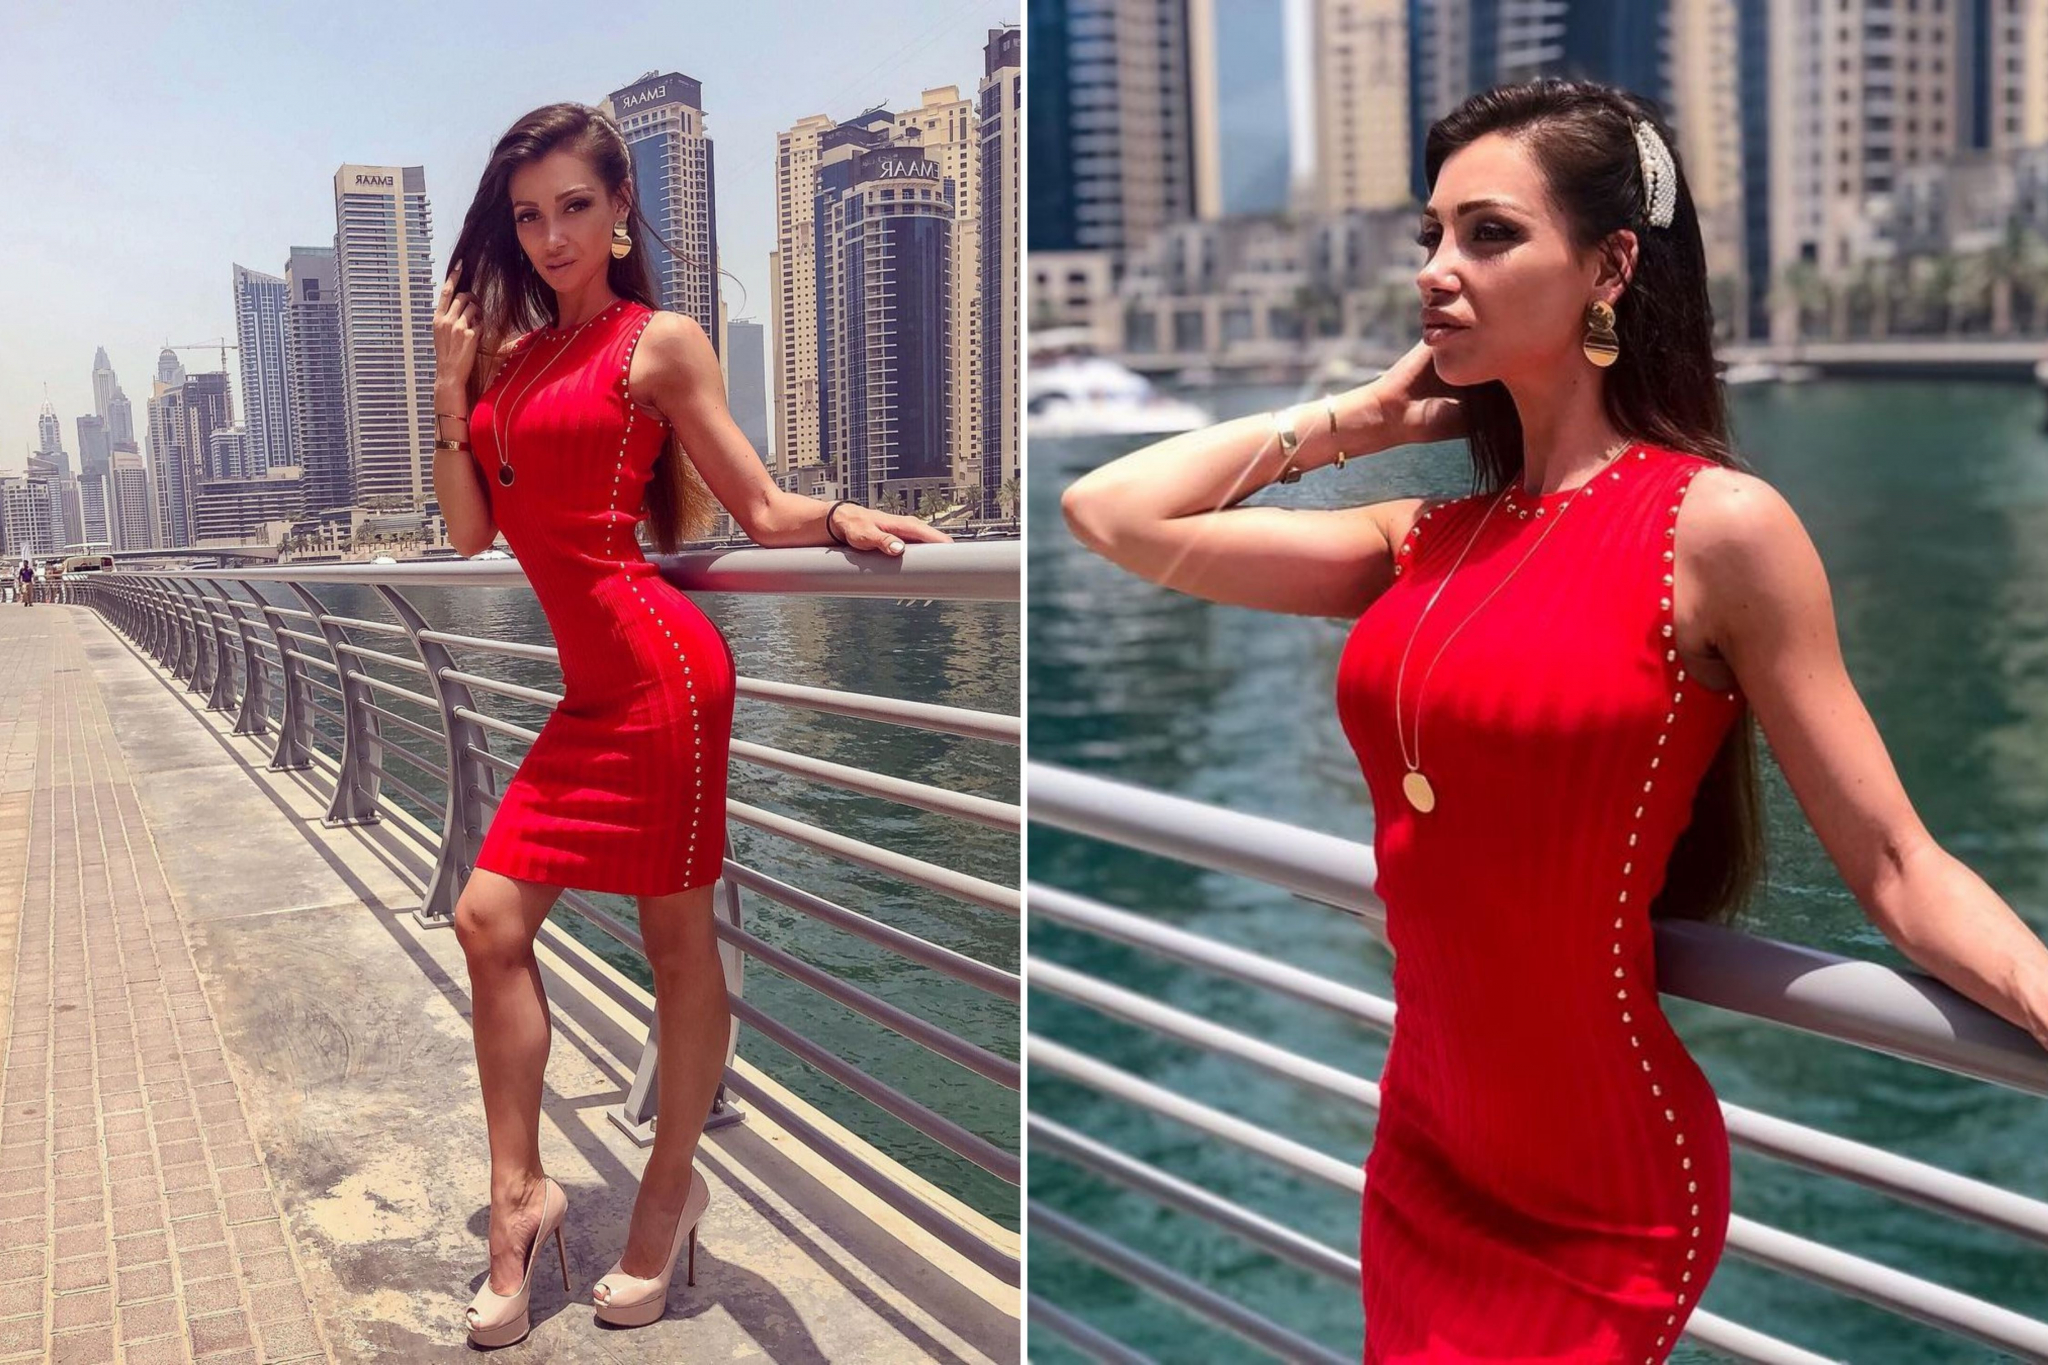 Julia in the red dress with long hairstyle